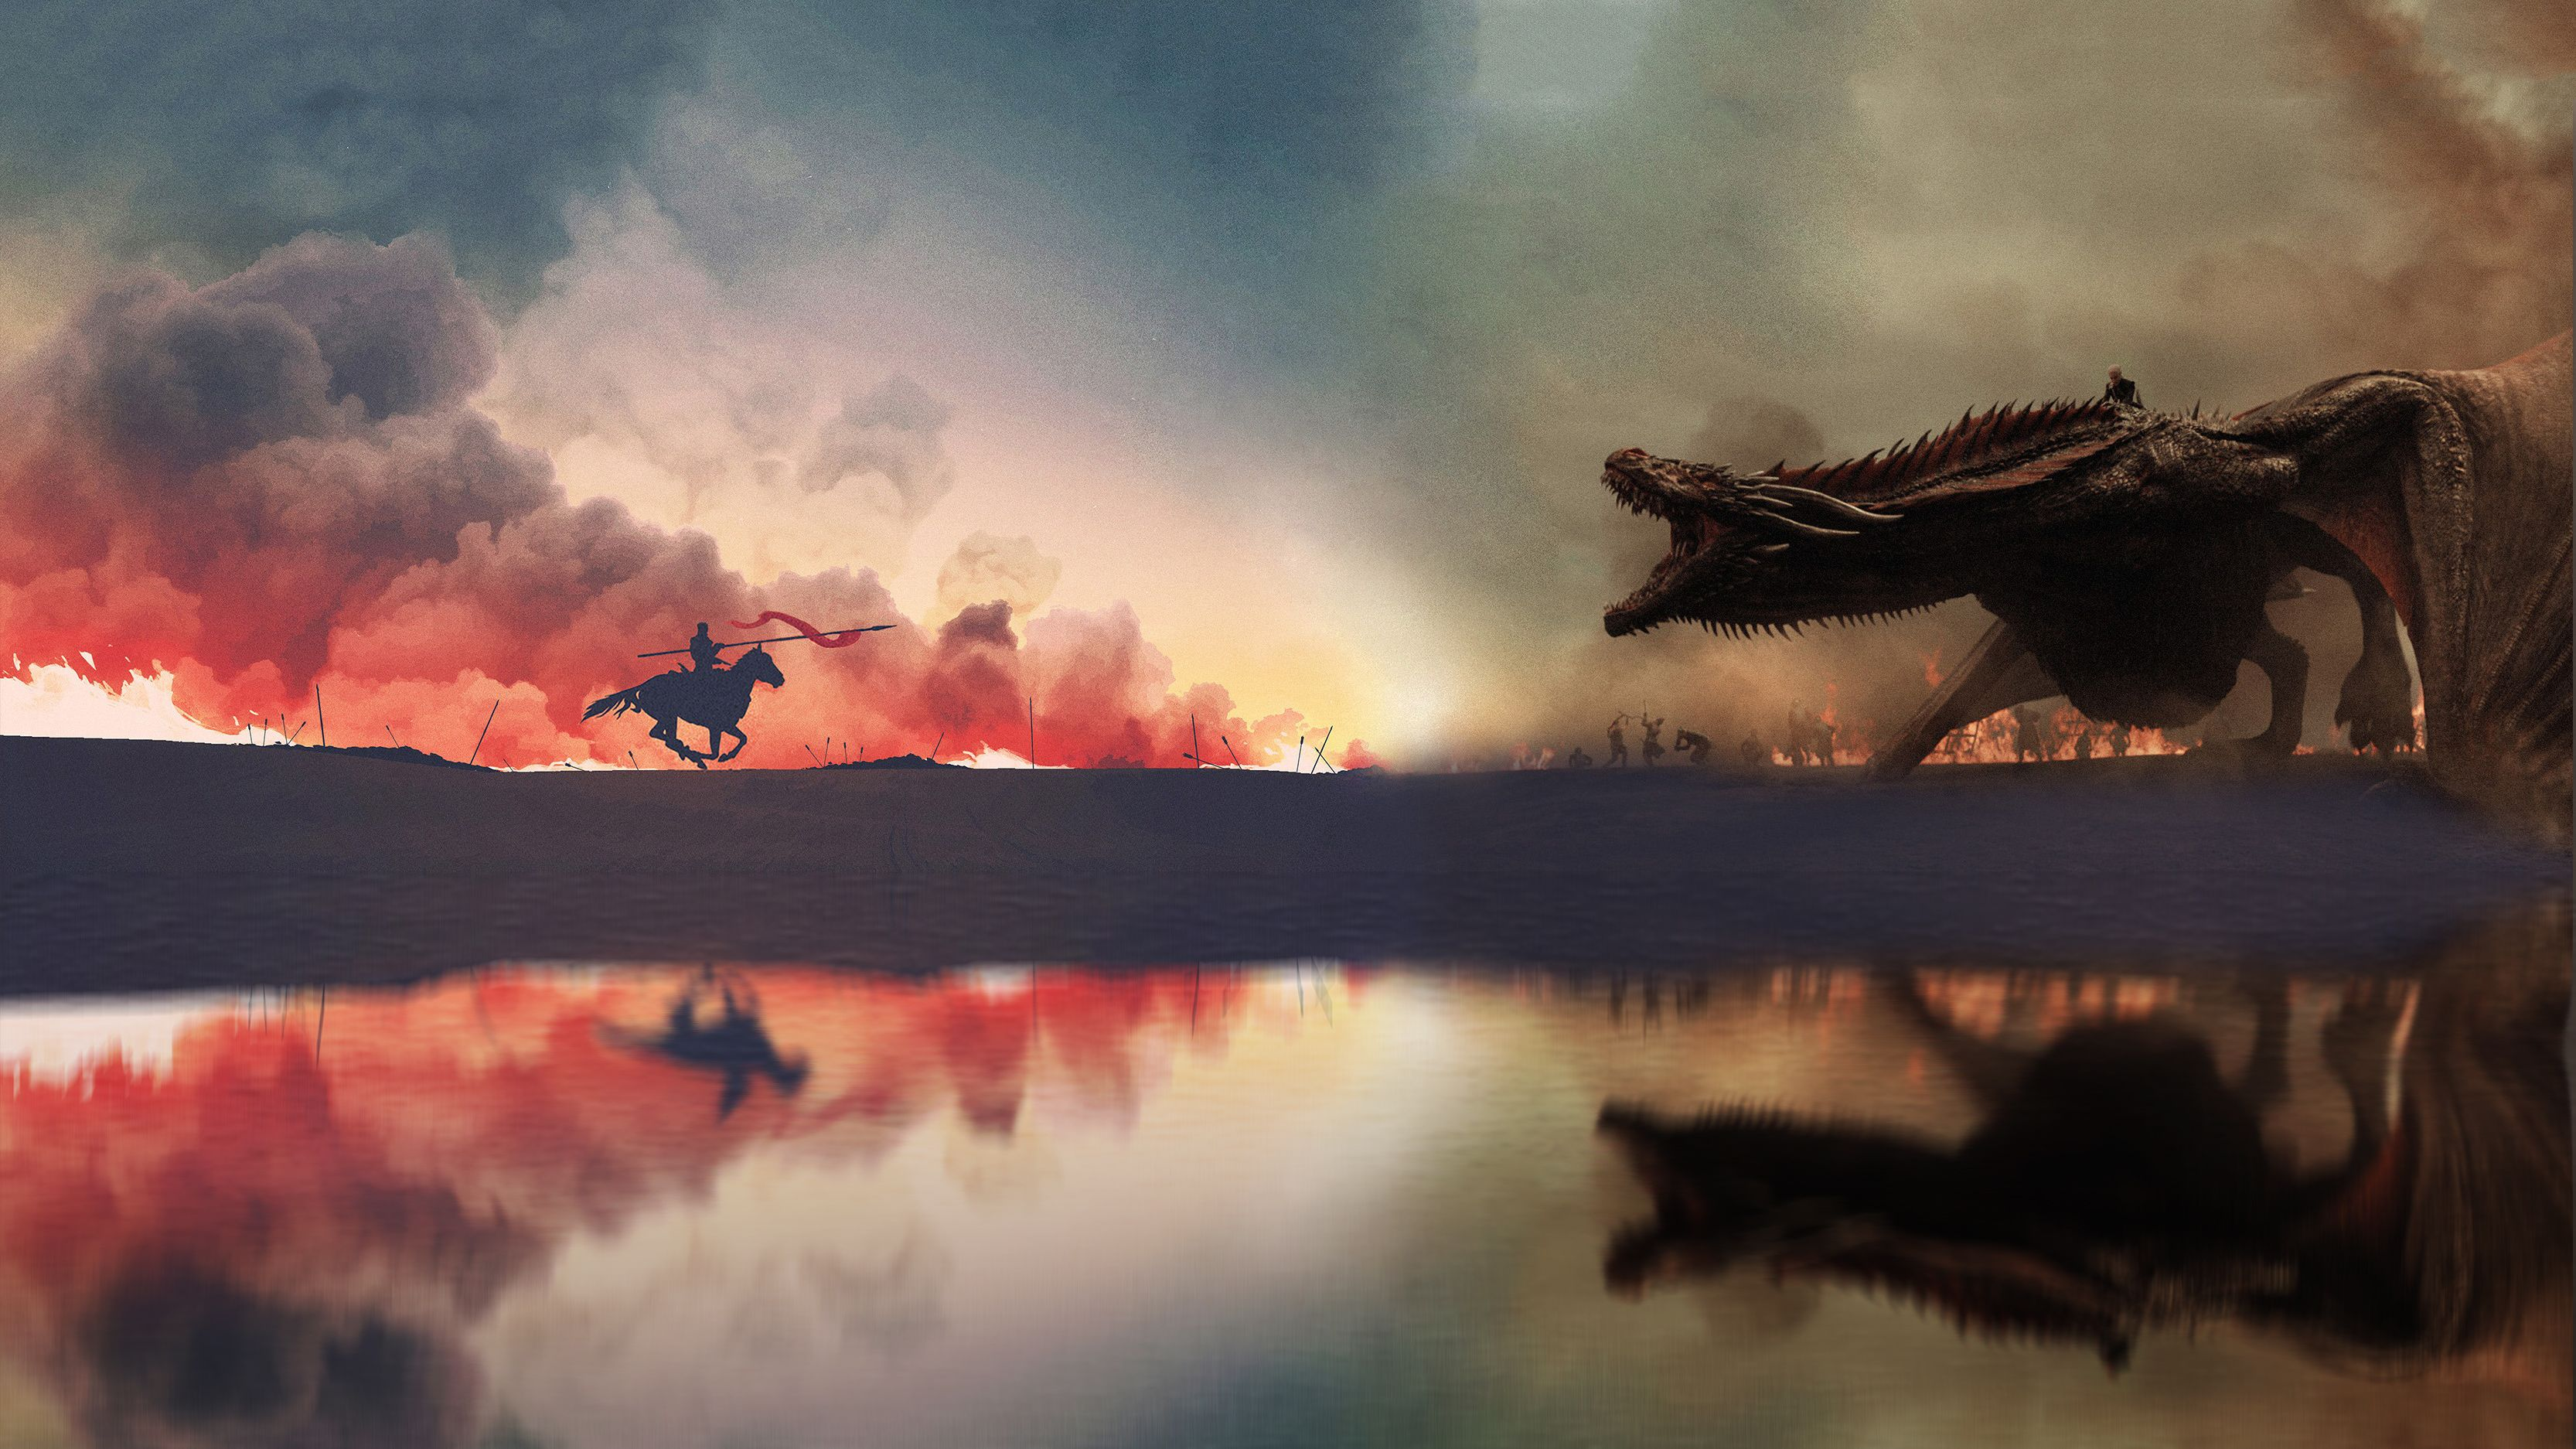 Game Of Thrones War Has Started Artwork 4k 6v Ultra Hd Wallpaper 2018 Game Of Thrones Artwork Drogon Game Of Thrones Game Of Thrones Dragons